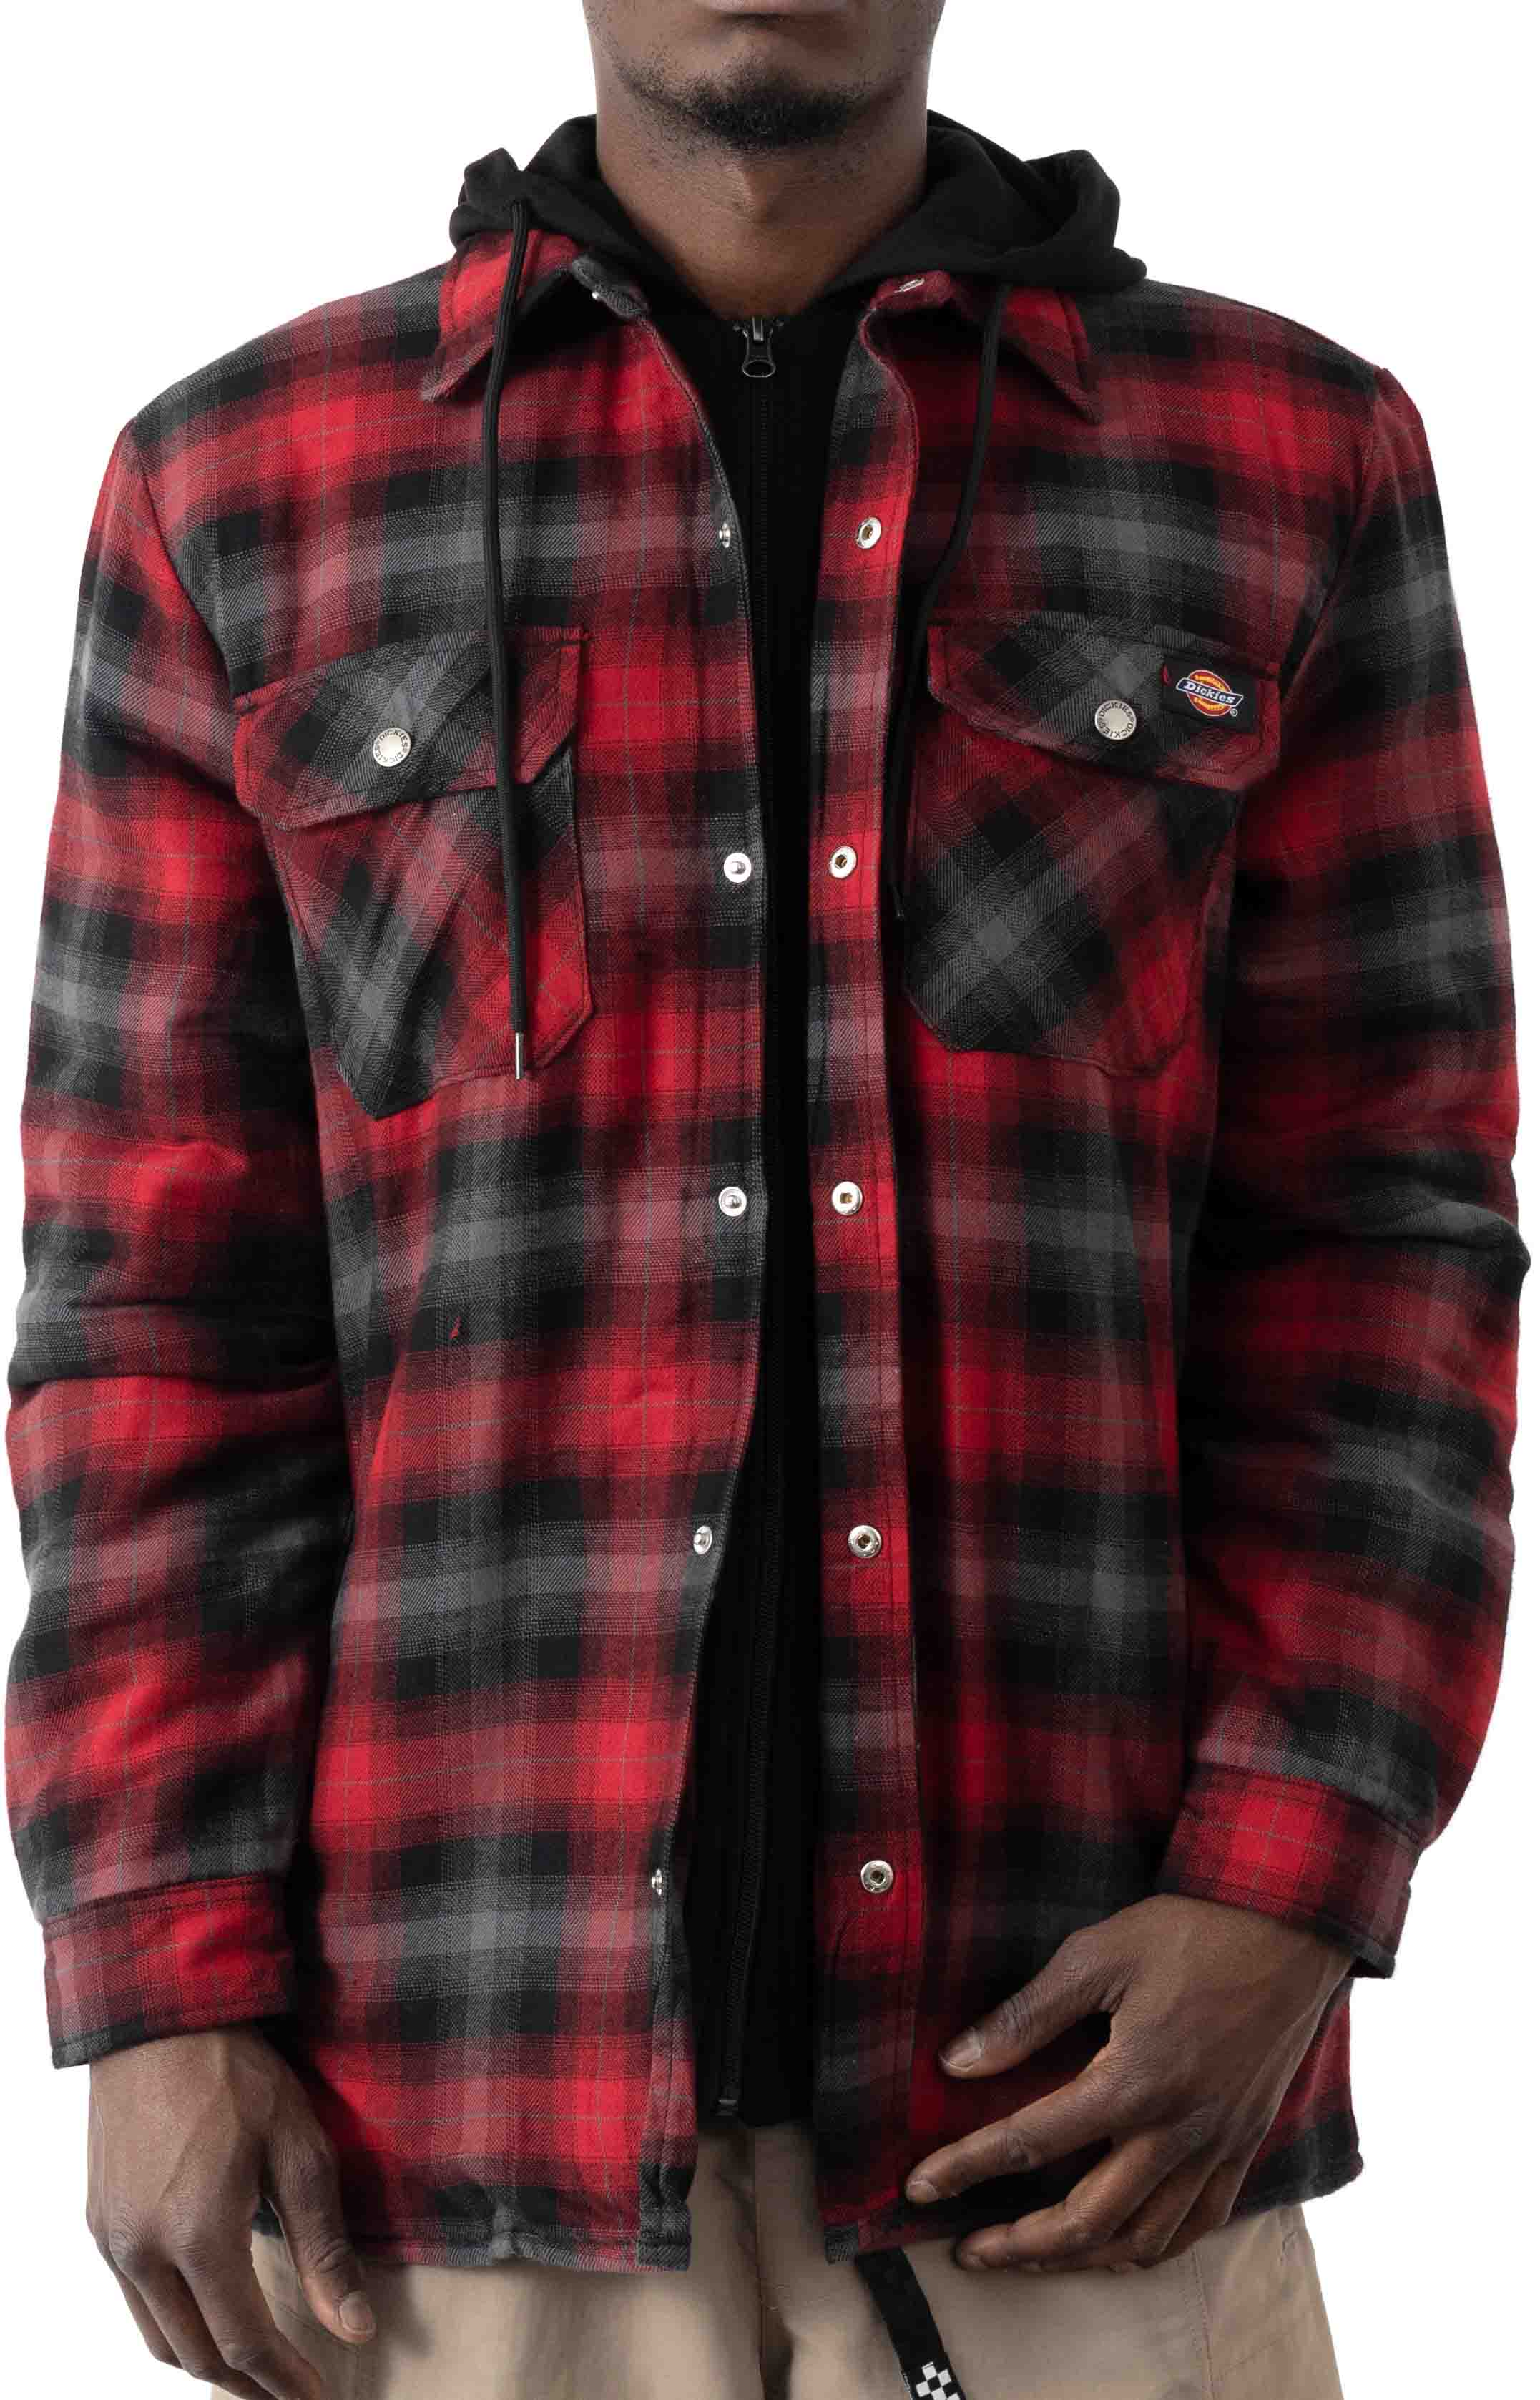 (TJ211INP1) Fleece Hooded Flannel Shirt Jacket with Hydroshield - English Red Black Ombre P